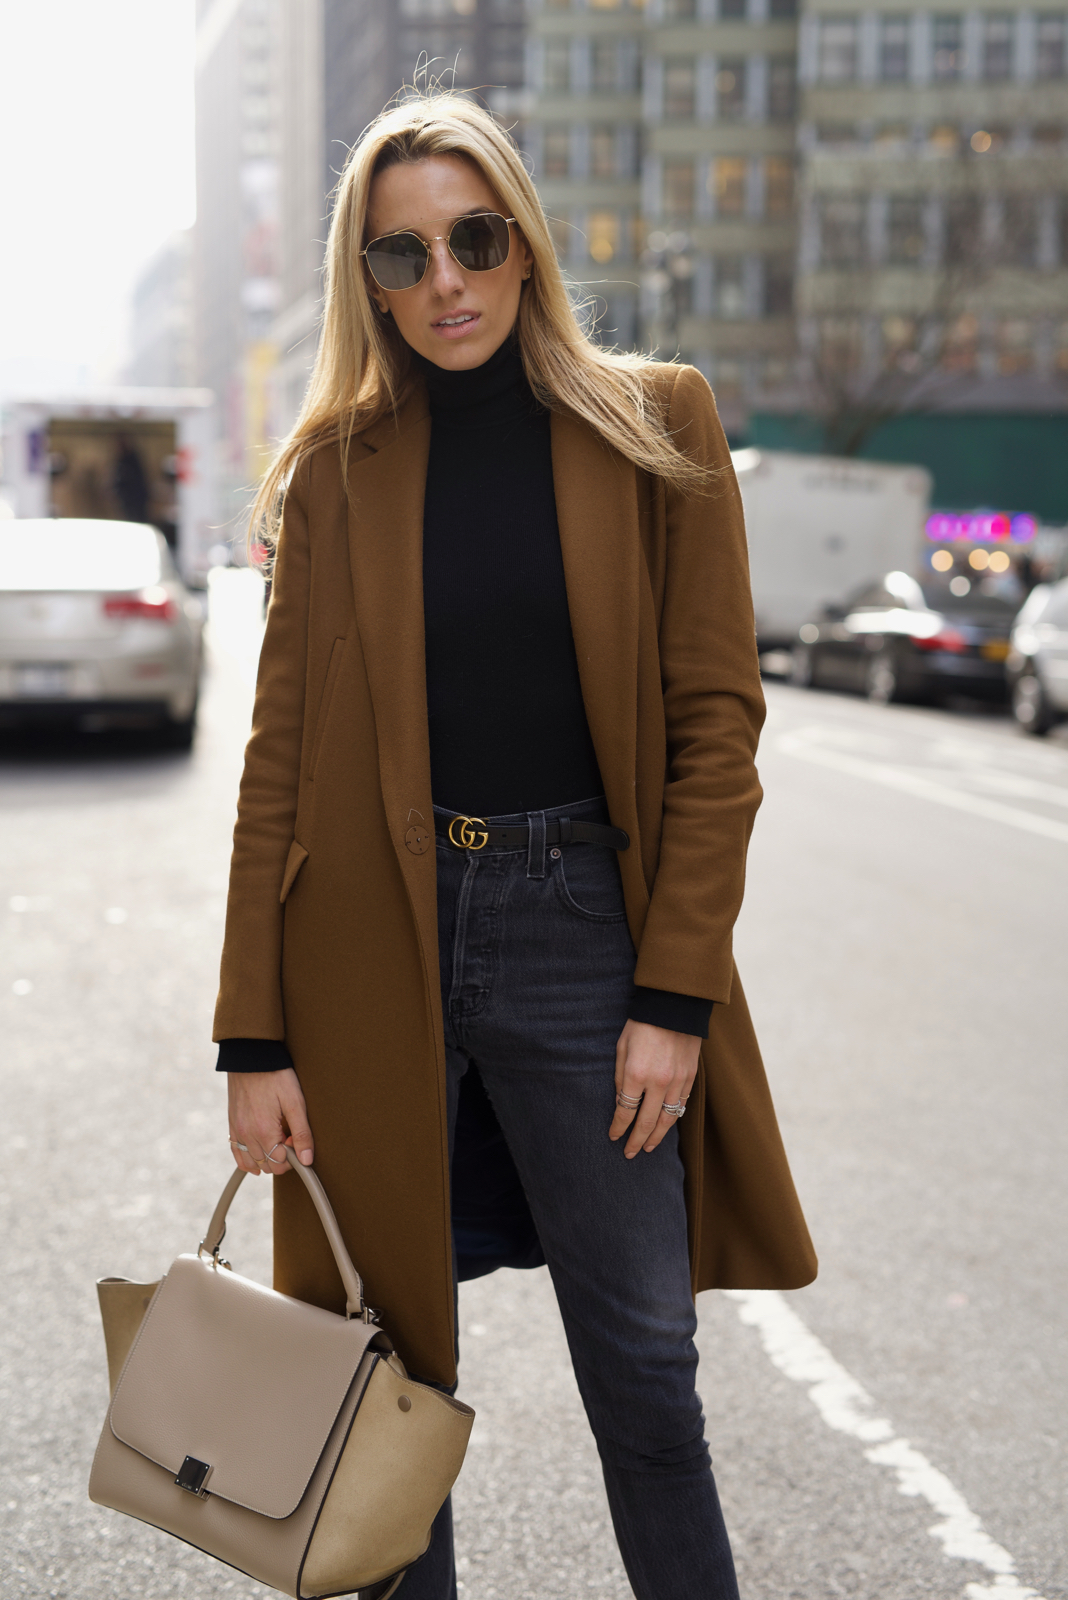 Nyc Street Style In All Black With A Camel Coat Mind